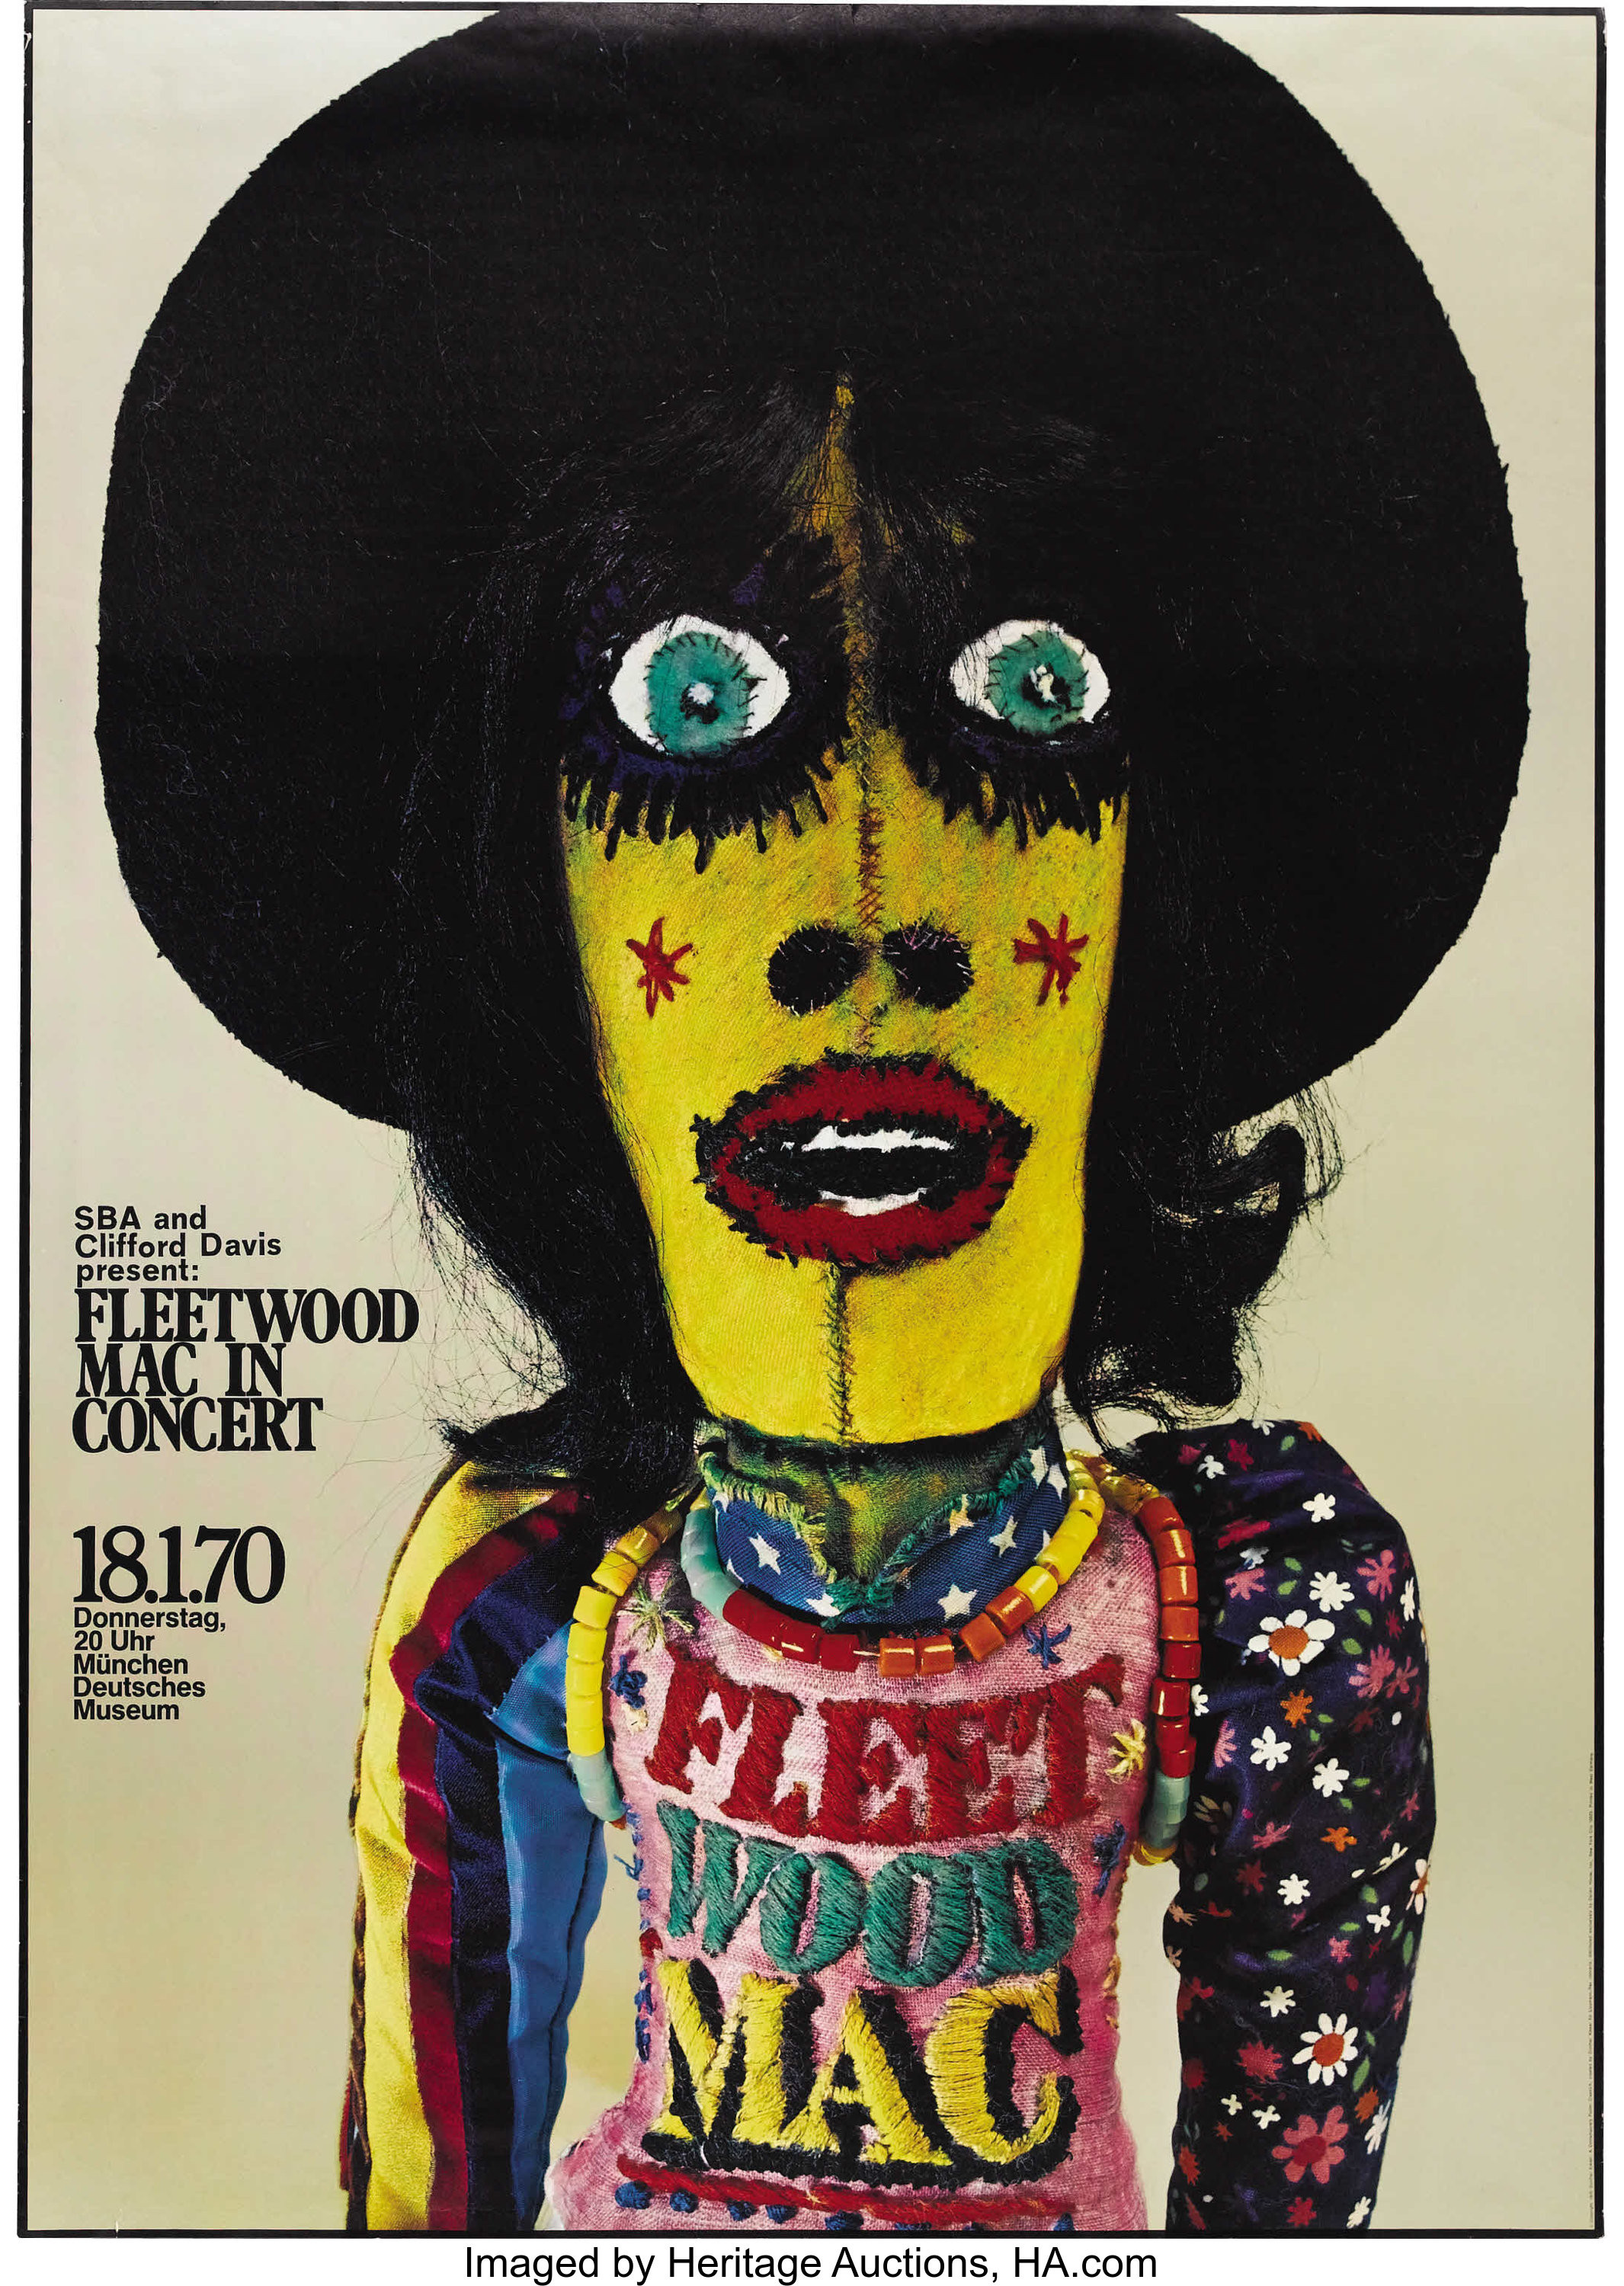 Fleetwood Mac Munich Concert Poster 1970 This Large Unusual Lot 21397 Heritage Auctions